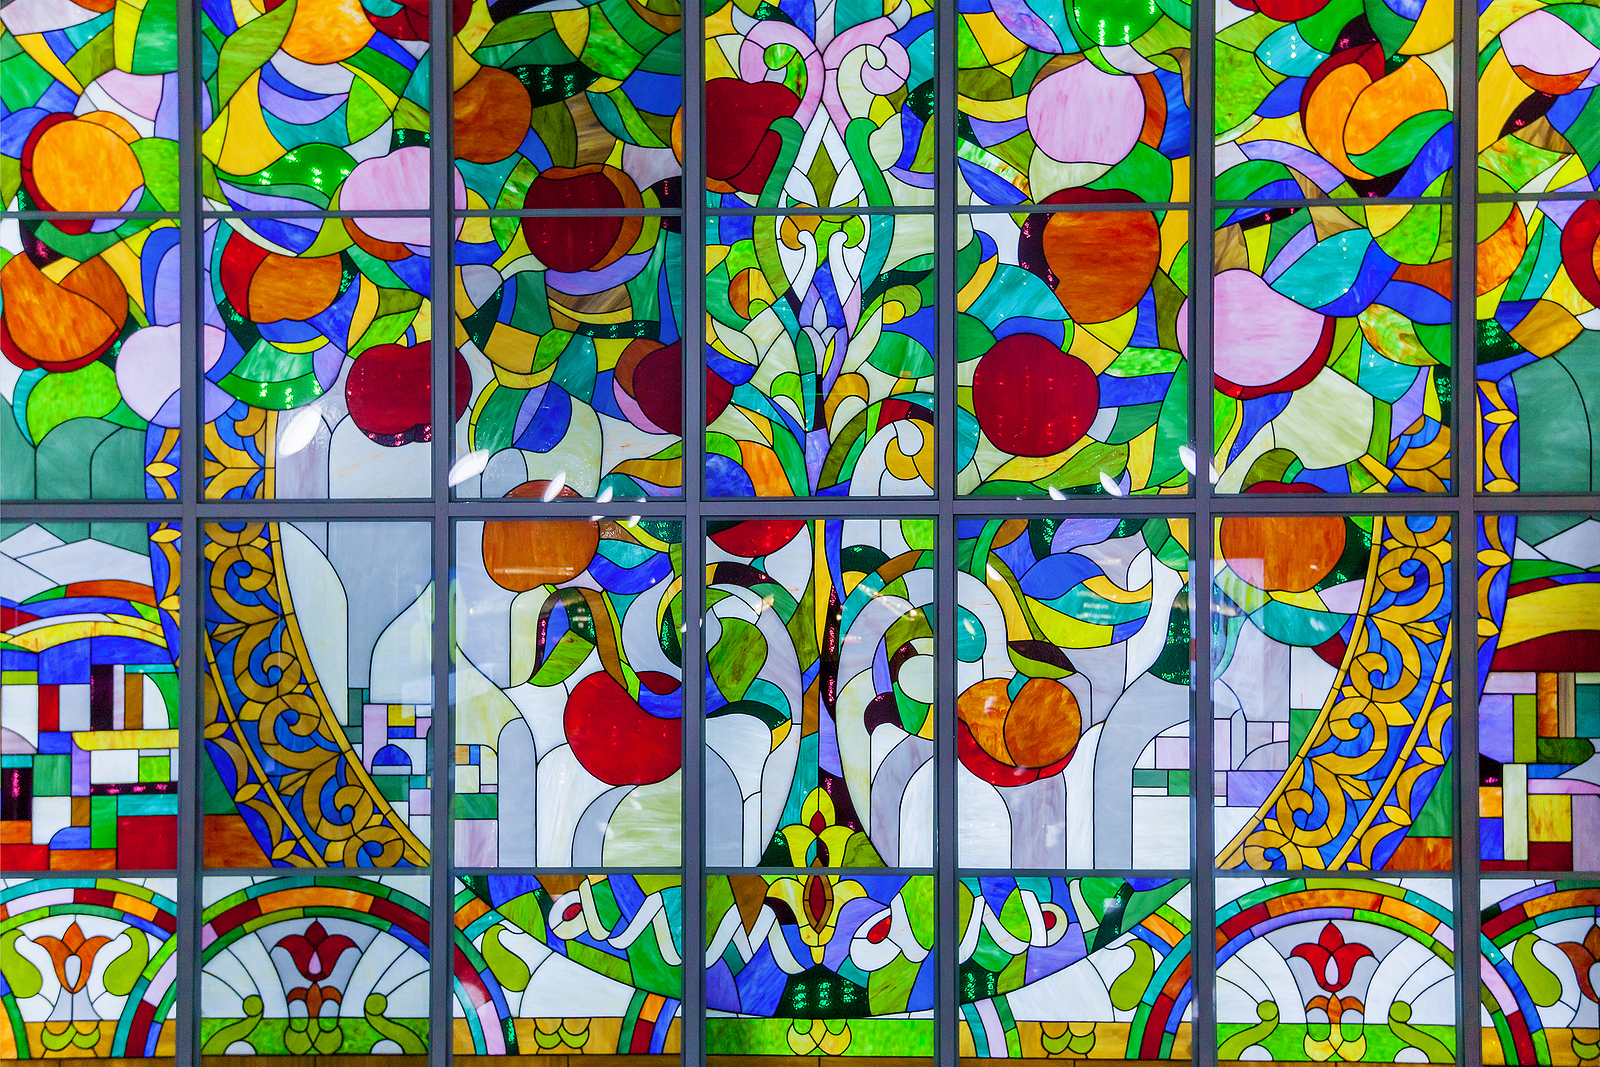 The apple tree mural at Almali Station on the Almaty metro